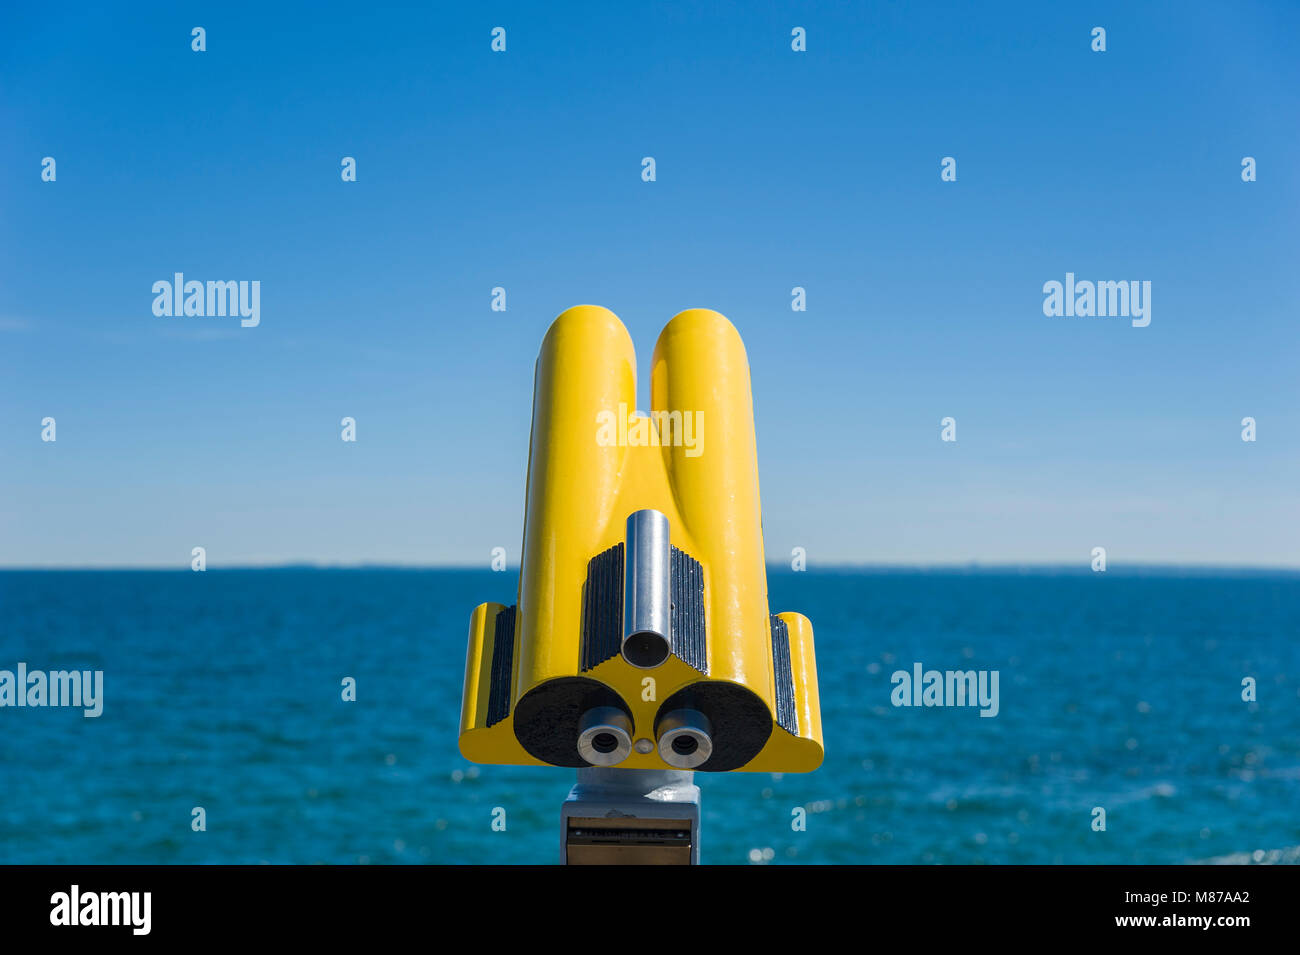 Binoculars at the viewpoint on the pier, Groemitz, Baltic Sea, Schleswig-Holstein, Germany, Europe - Stock Image